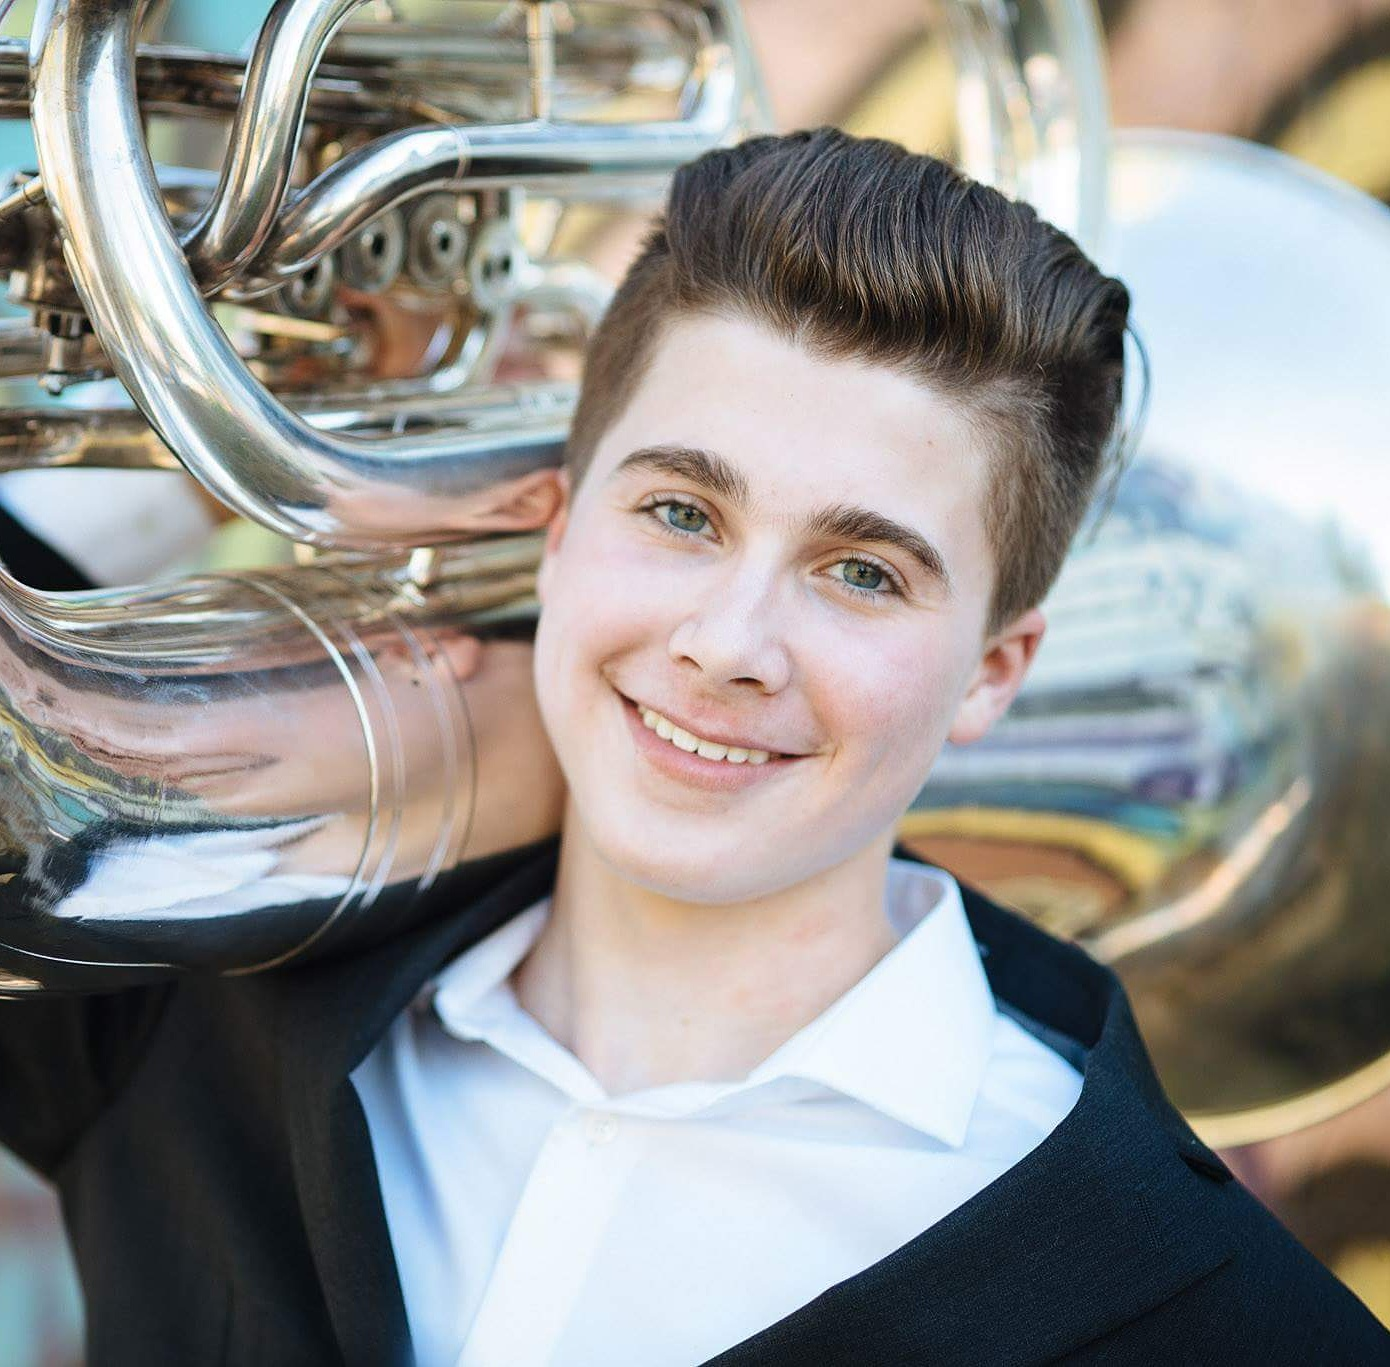 Jack Crepeau poses with his tuba Photo By Dennis Webber